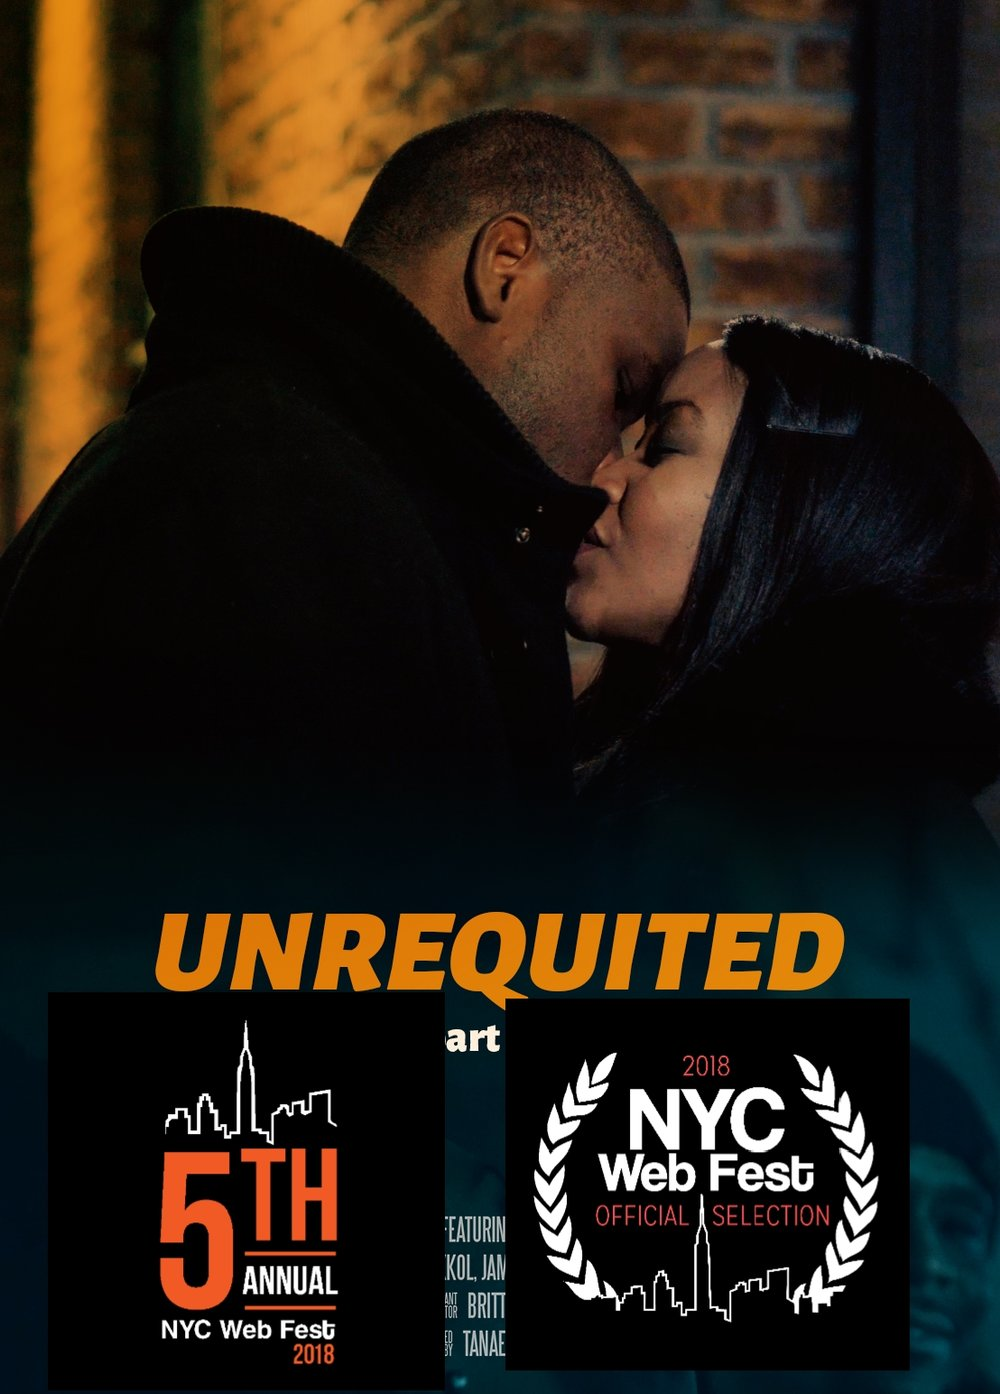 Unrequited official poster